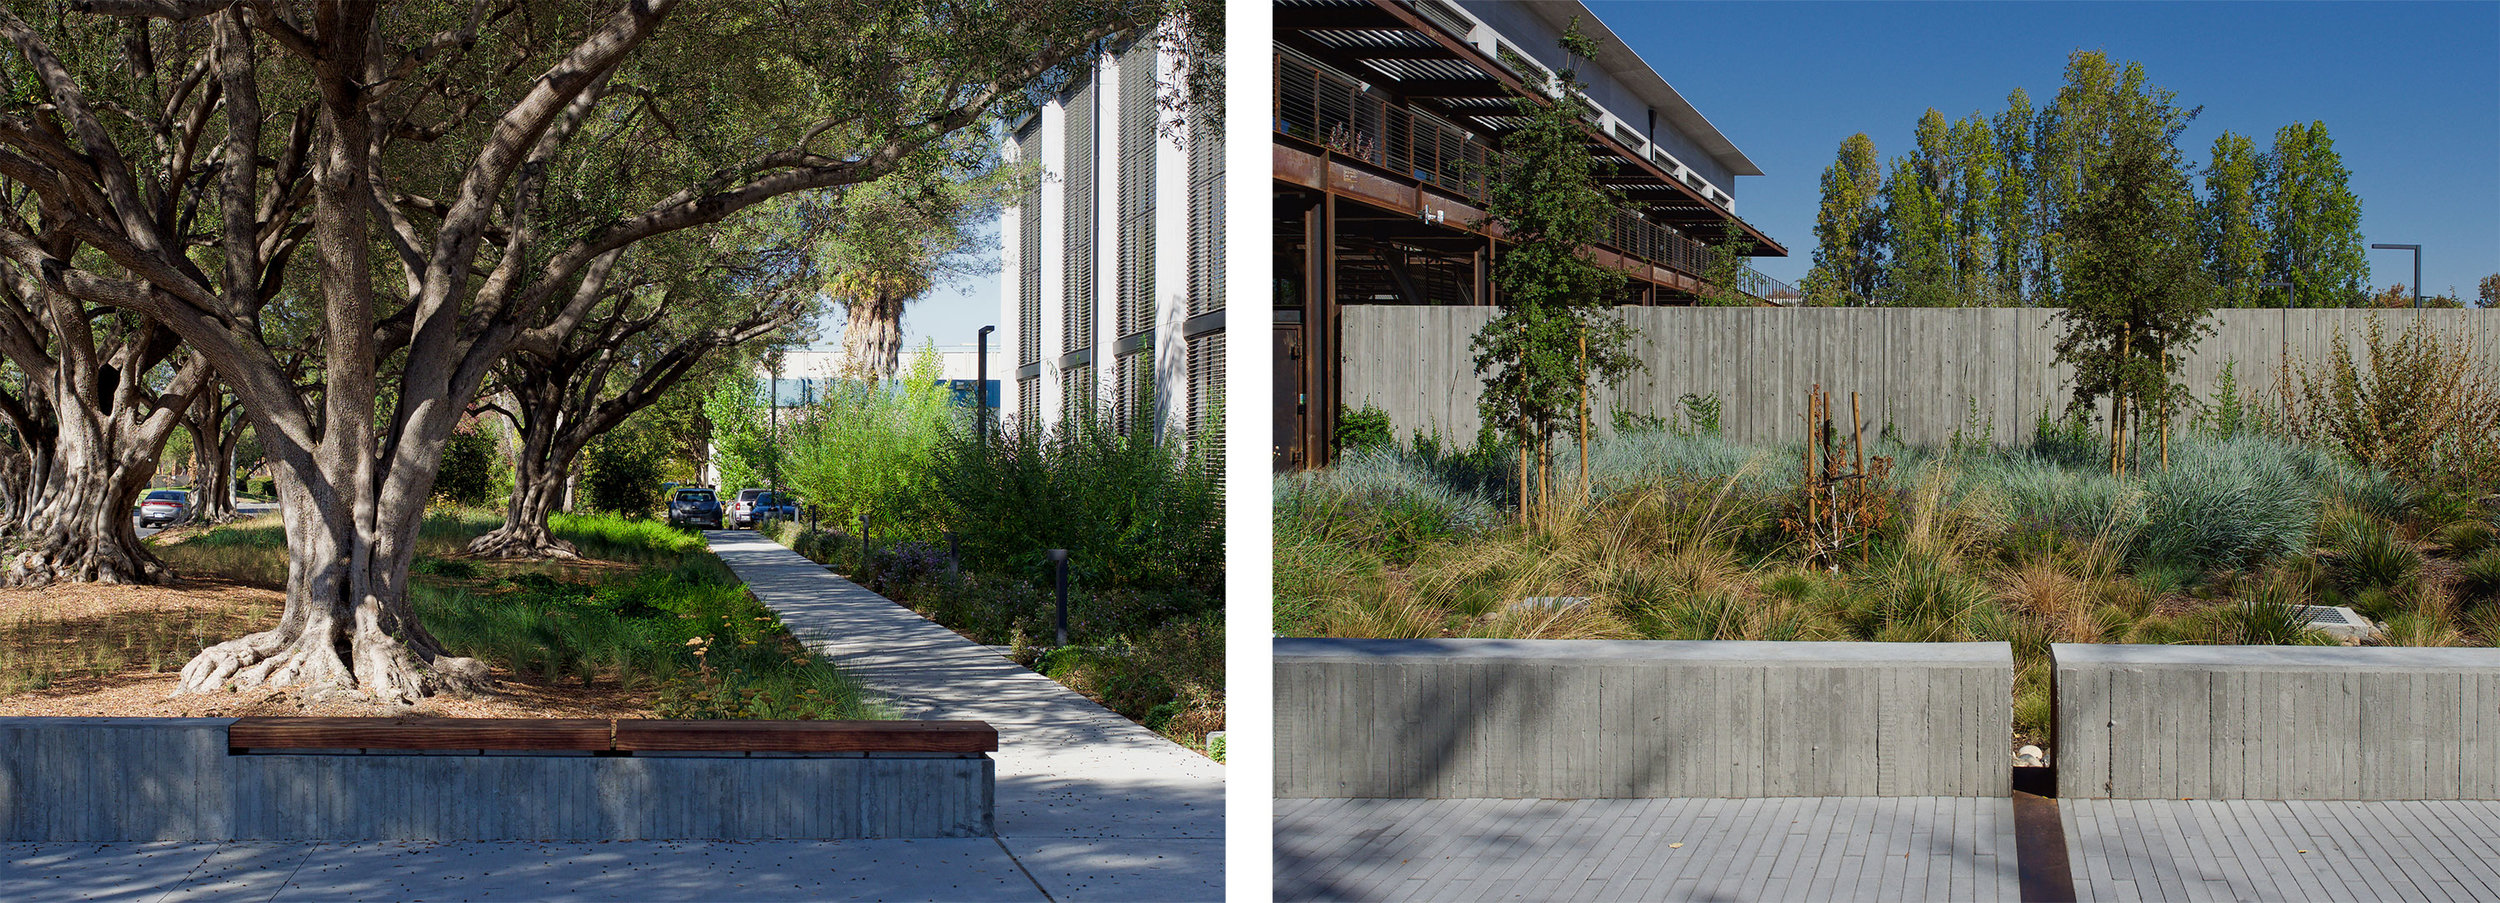 Google at 1212 Bordeaux, Bioswales, Biophilia, Olive Grove, Concrete, Corten, Habitat, Nature